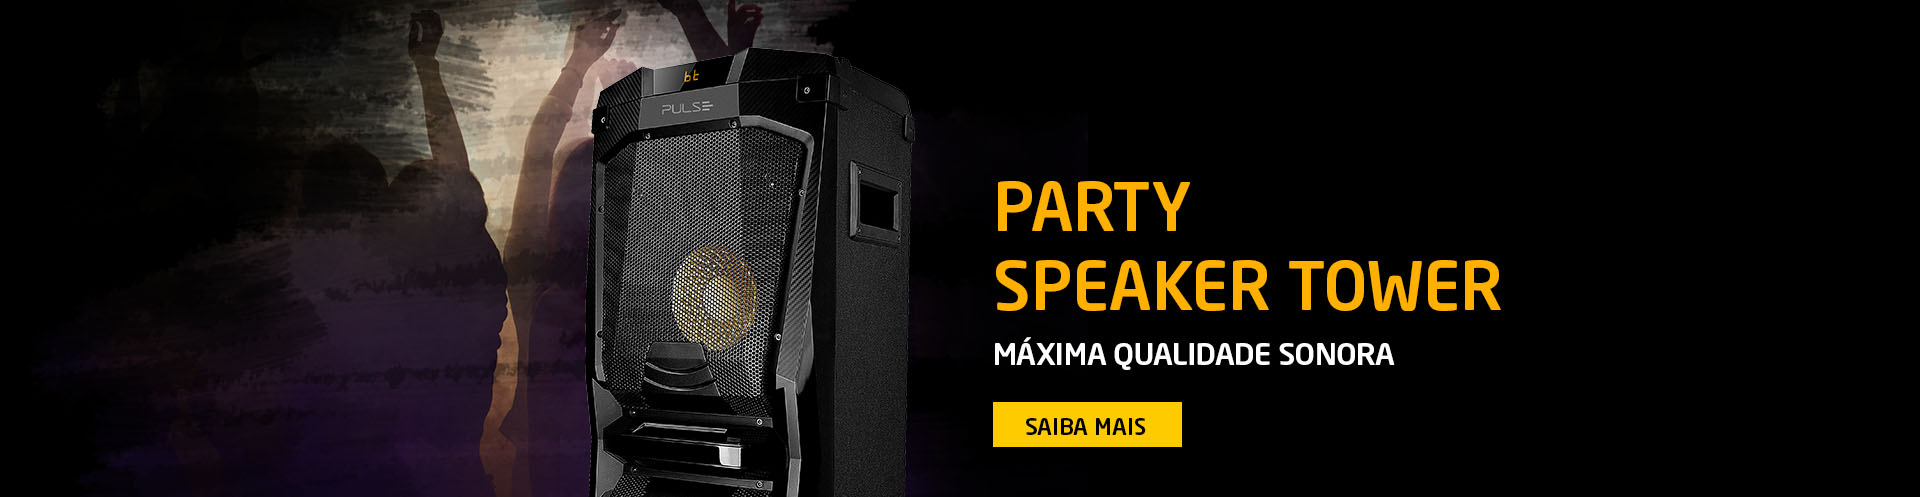 Party Speaker Tower